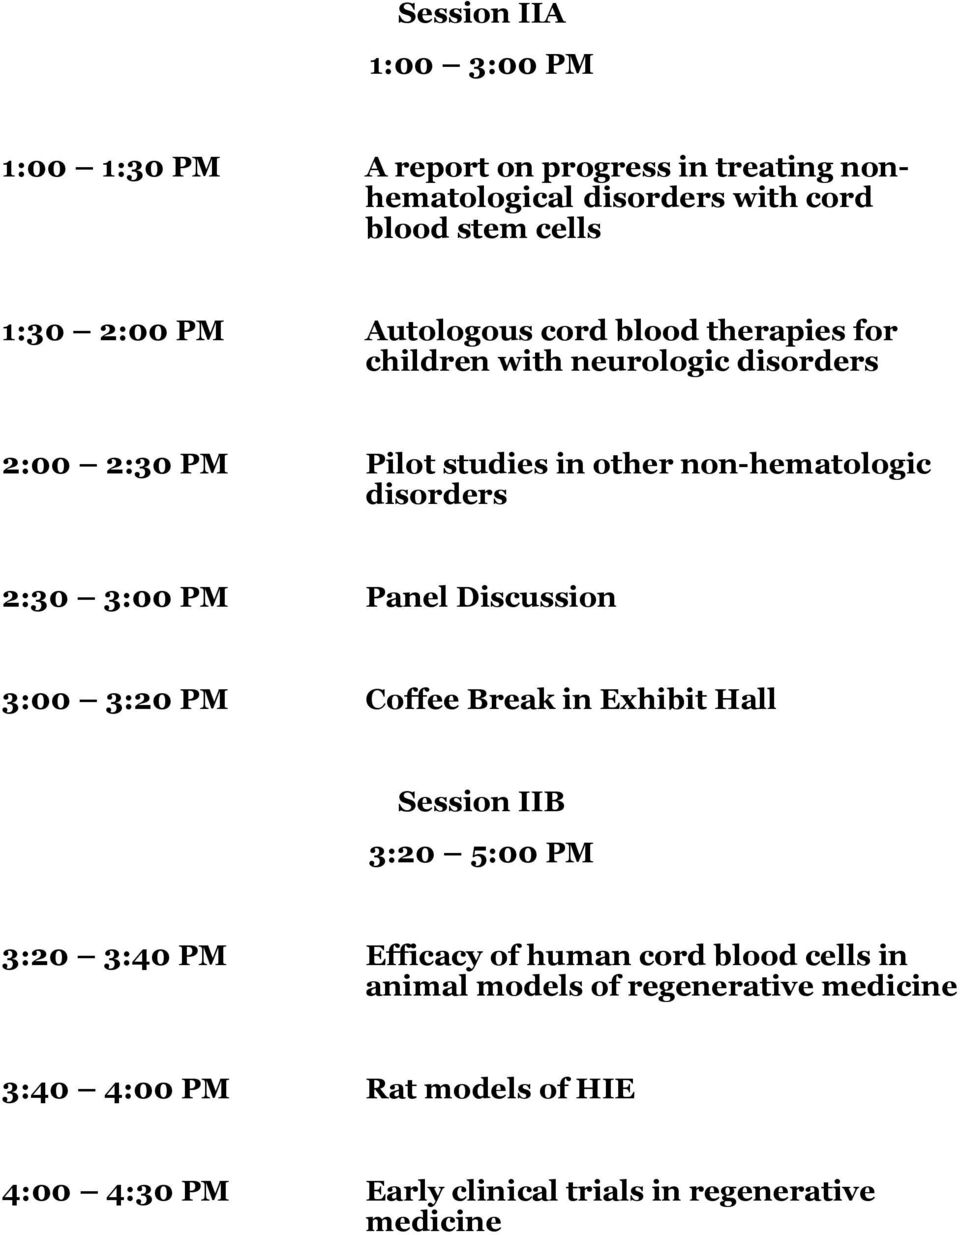 2:30 3:00 PM Panel Discussion 3:00 3:20 PM Coffee Break in Exhibit Hall Session IIB 3:20 5:00 PM 3:20 3:40 PM Efficacy of human cord